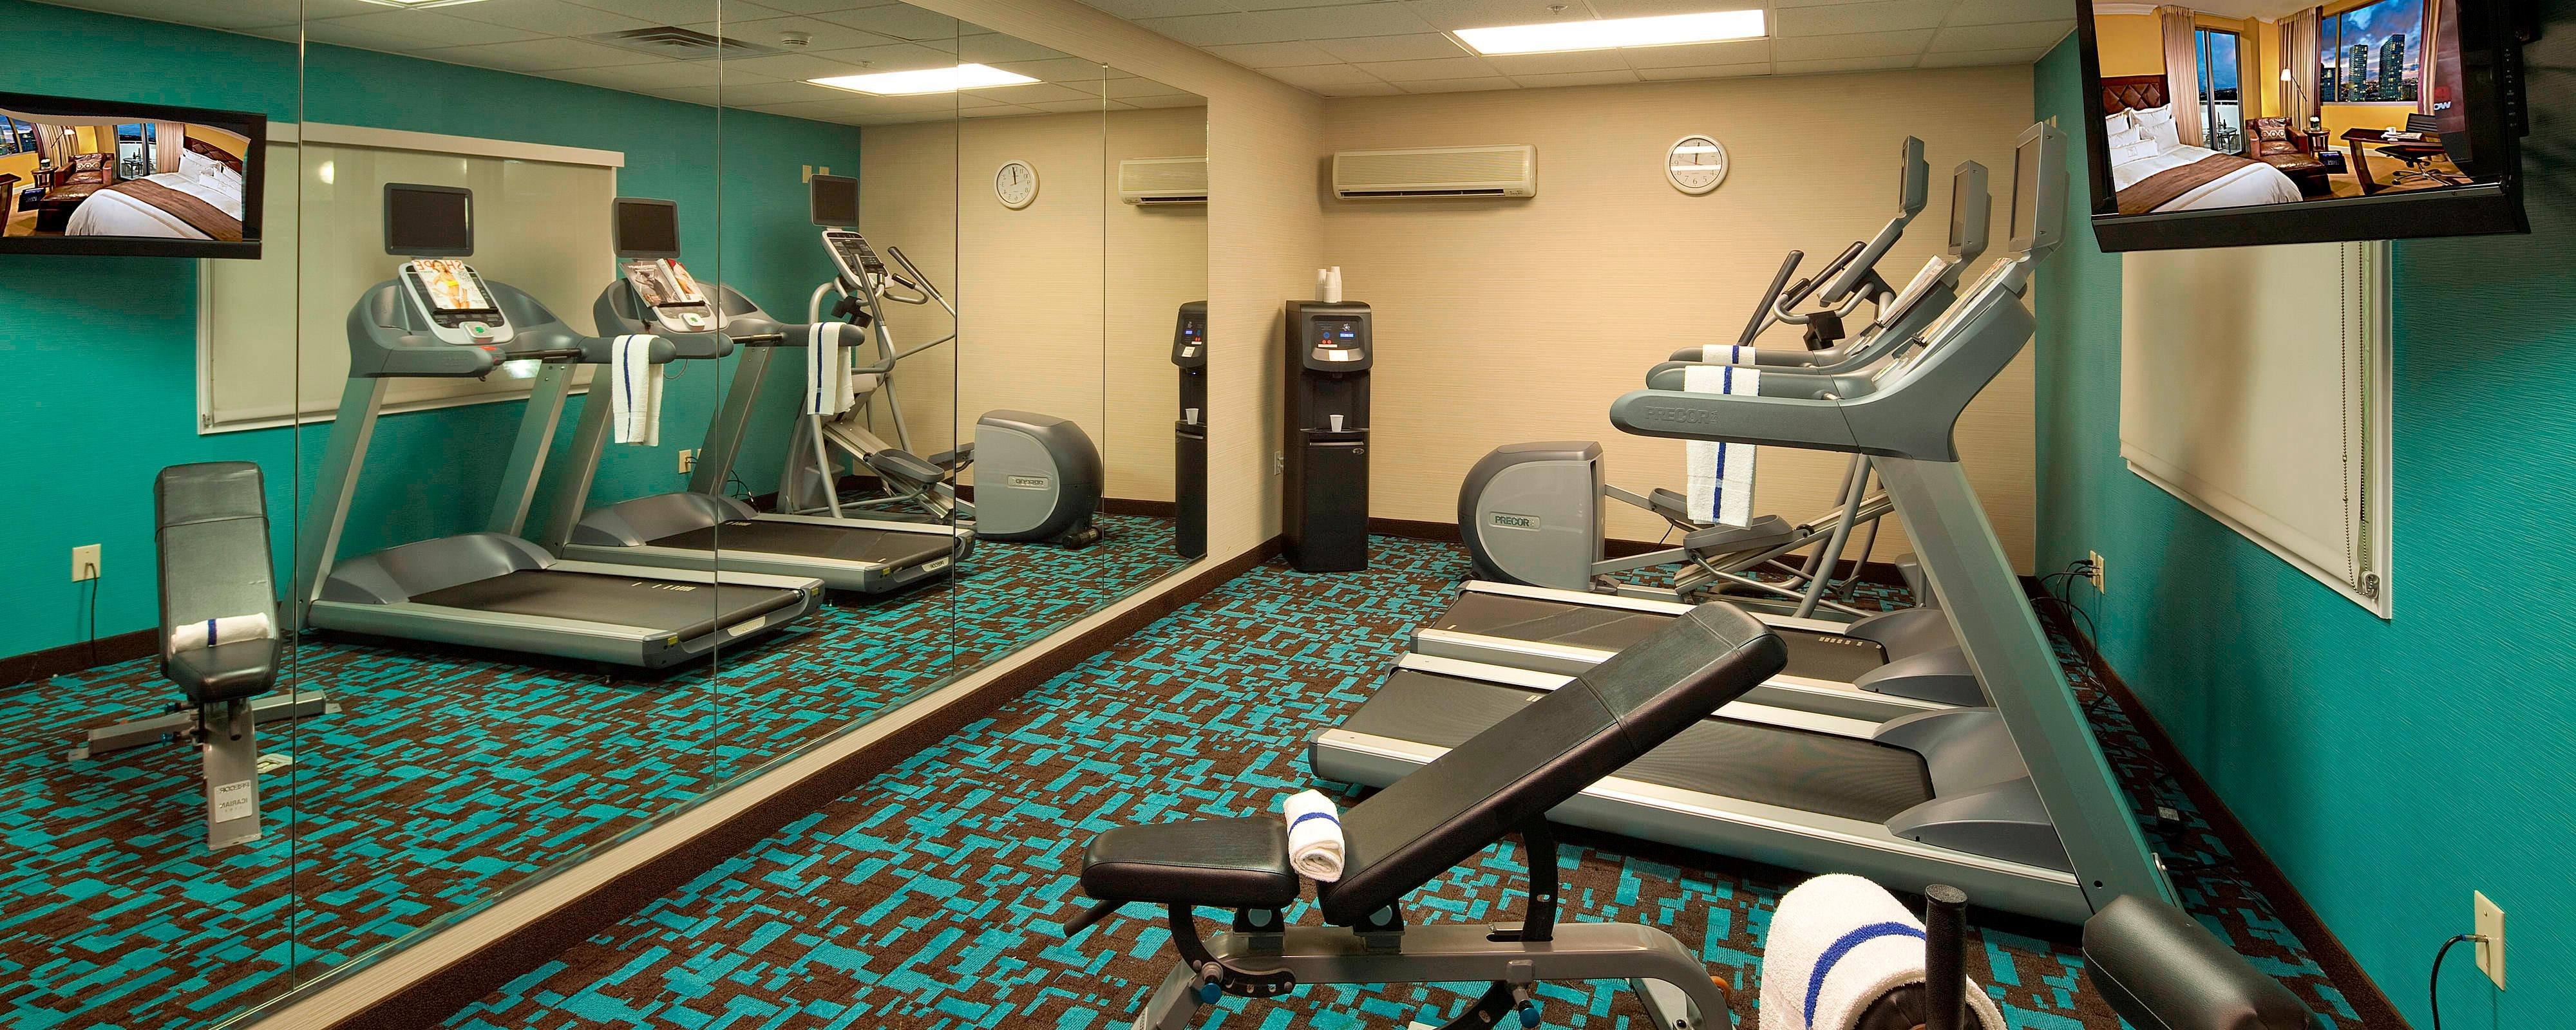 Fitness Center with Treadmills Elliptical